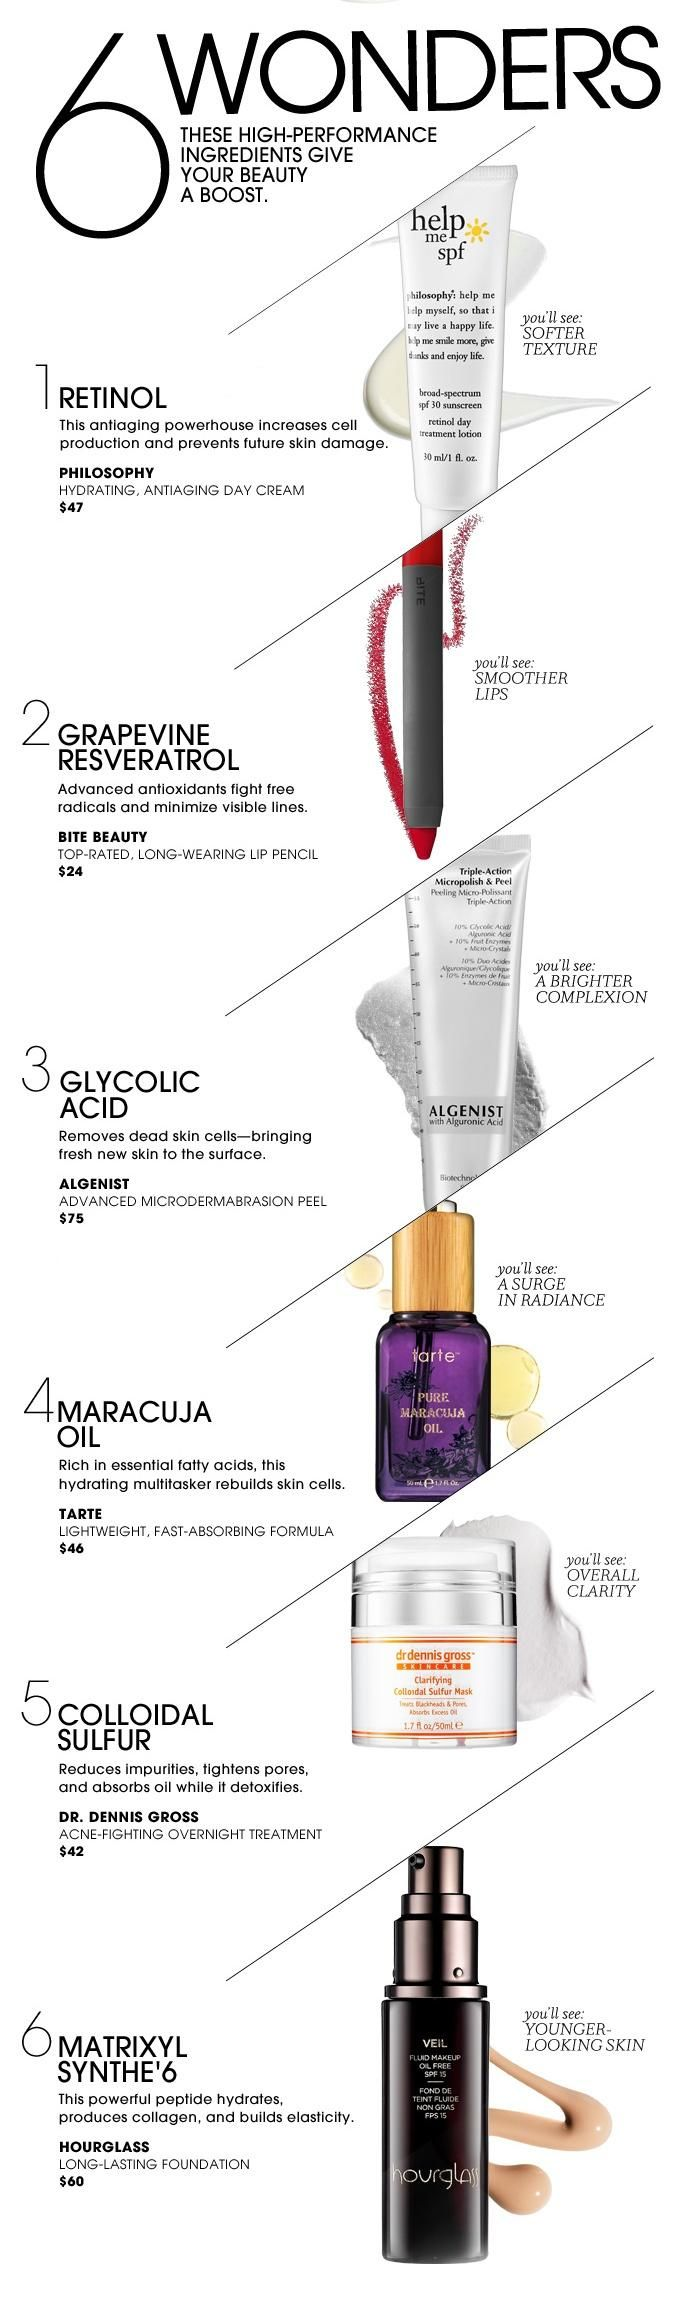 These high-performance ingredients give your beauty a boost. #Sephora